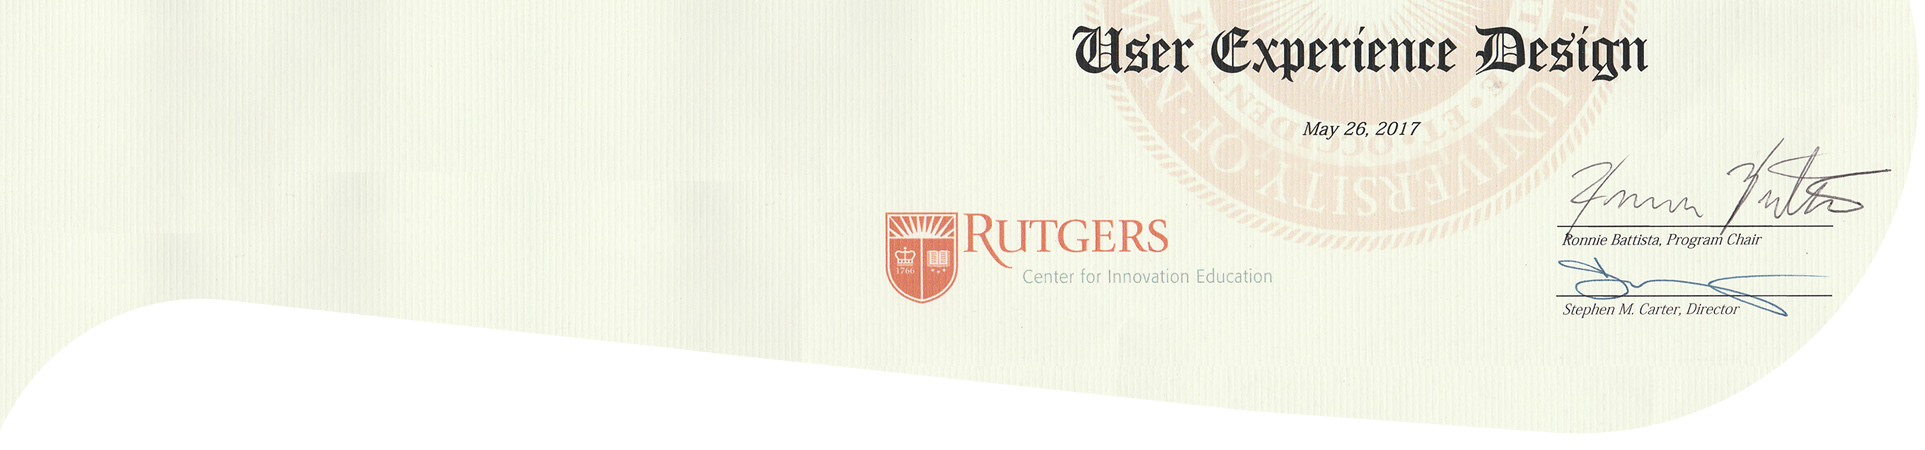 Rutgers UX - Pathways